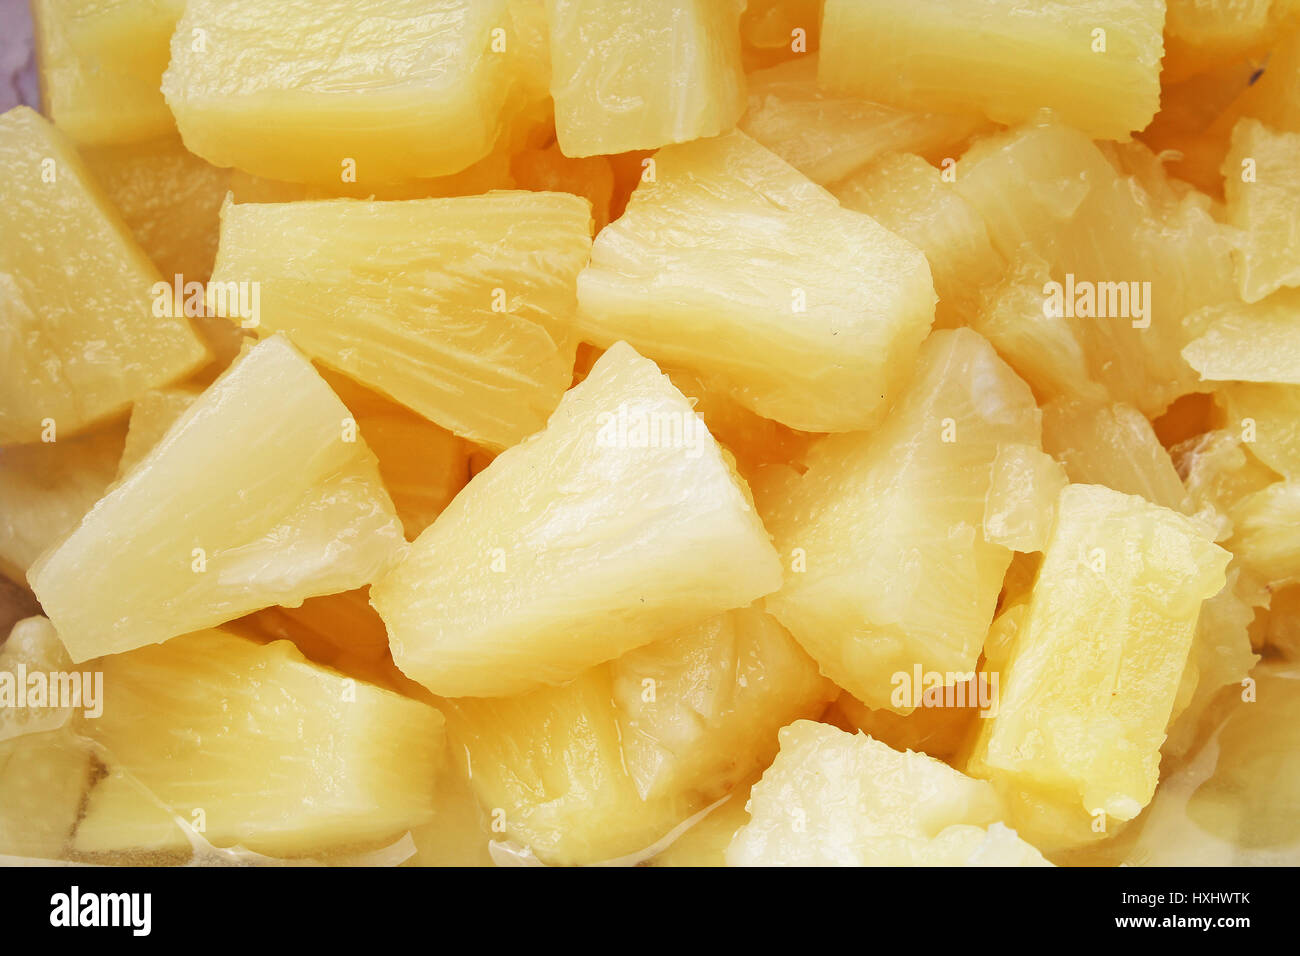 Pineapple slices as background. Yellow pineapples texture pattern. - Stock Image